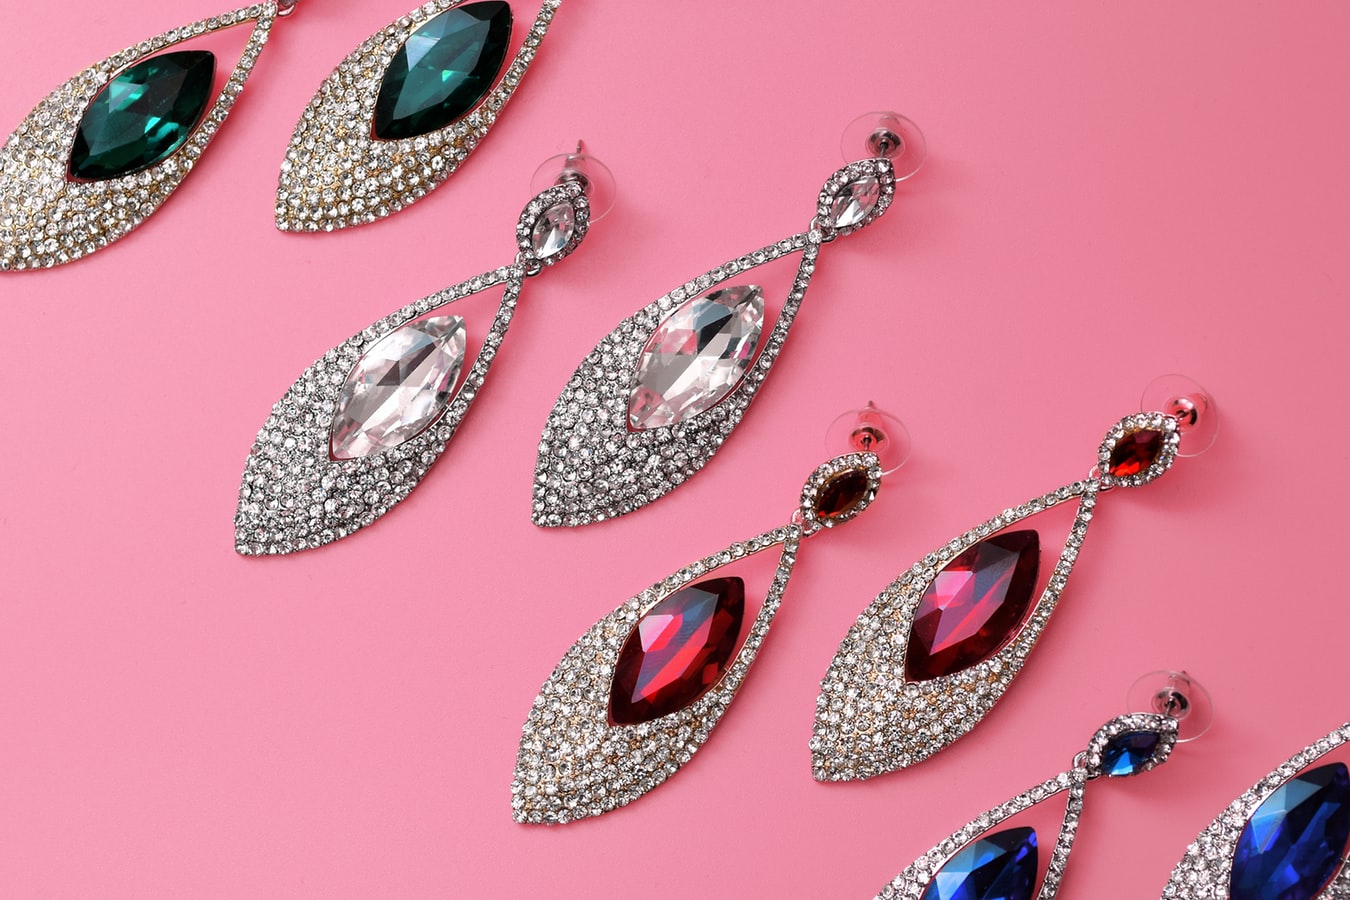 Looking to sell wholesale jewelry?